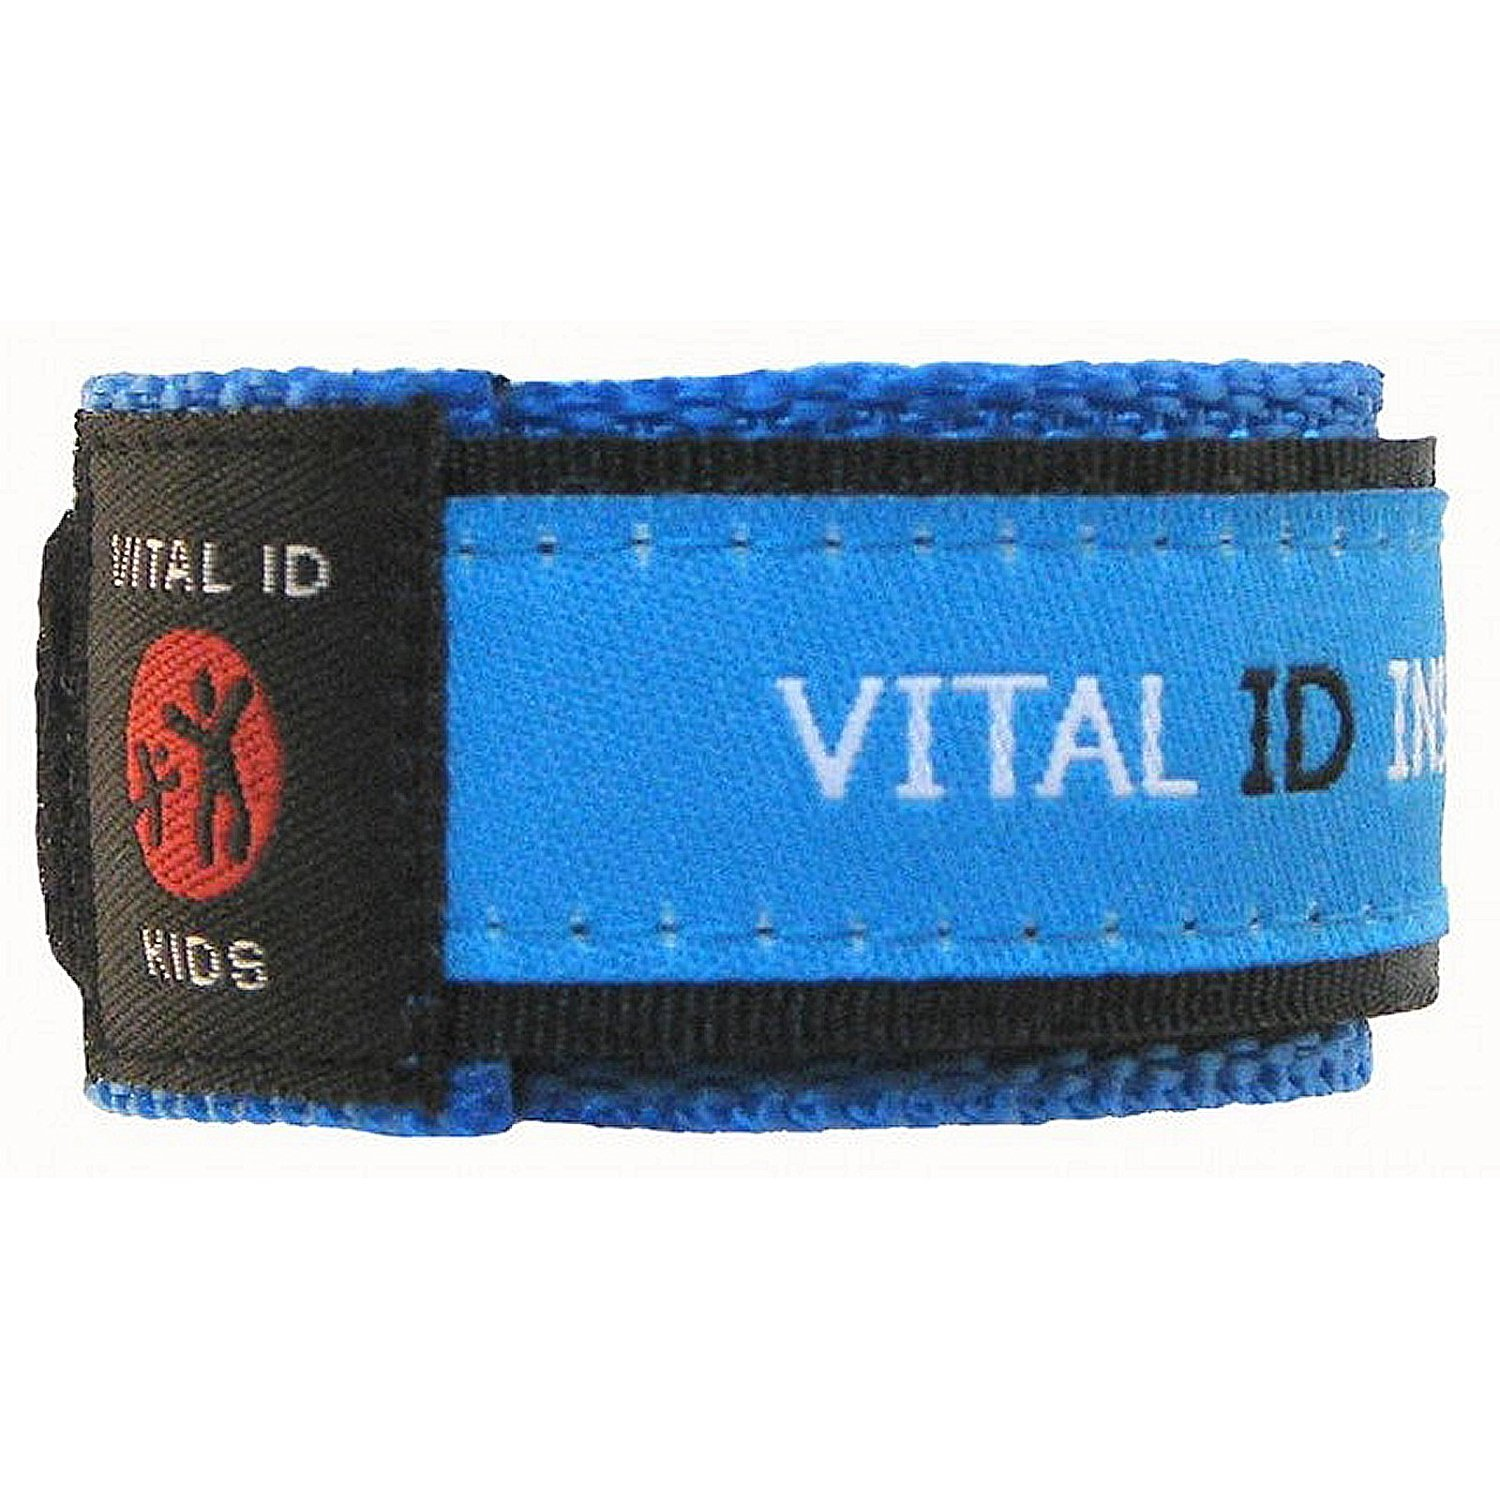 Amazon Com Vital Id Child Safety Wristband Pink Health